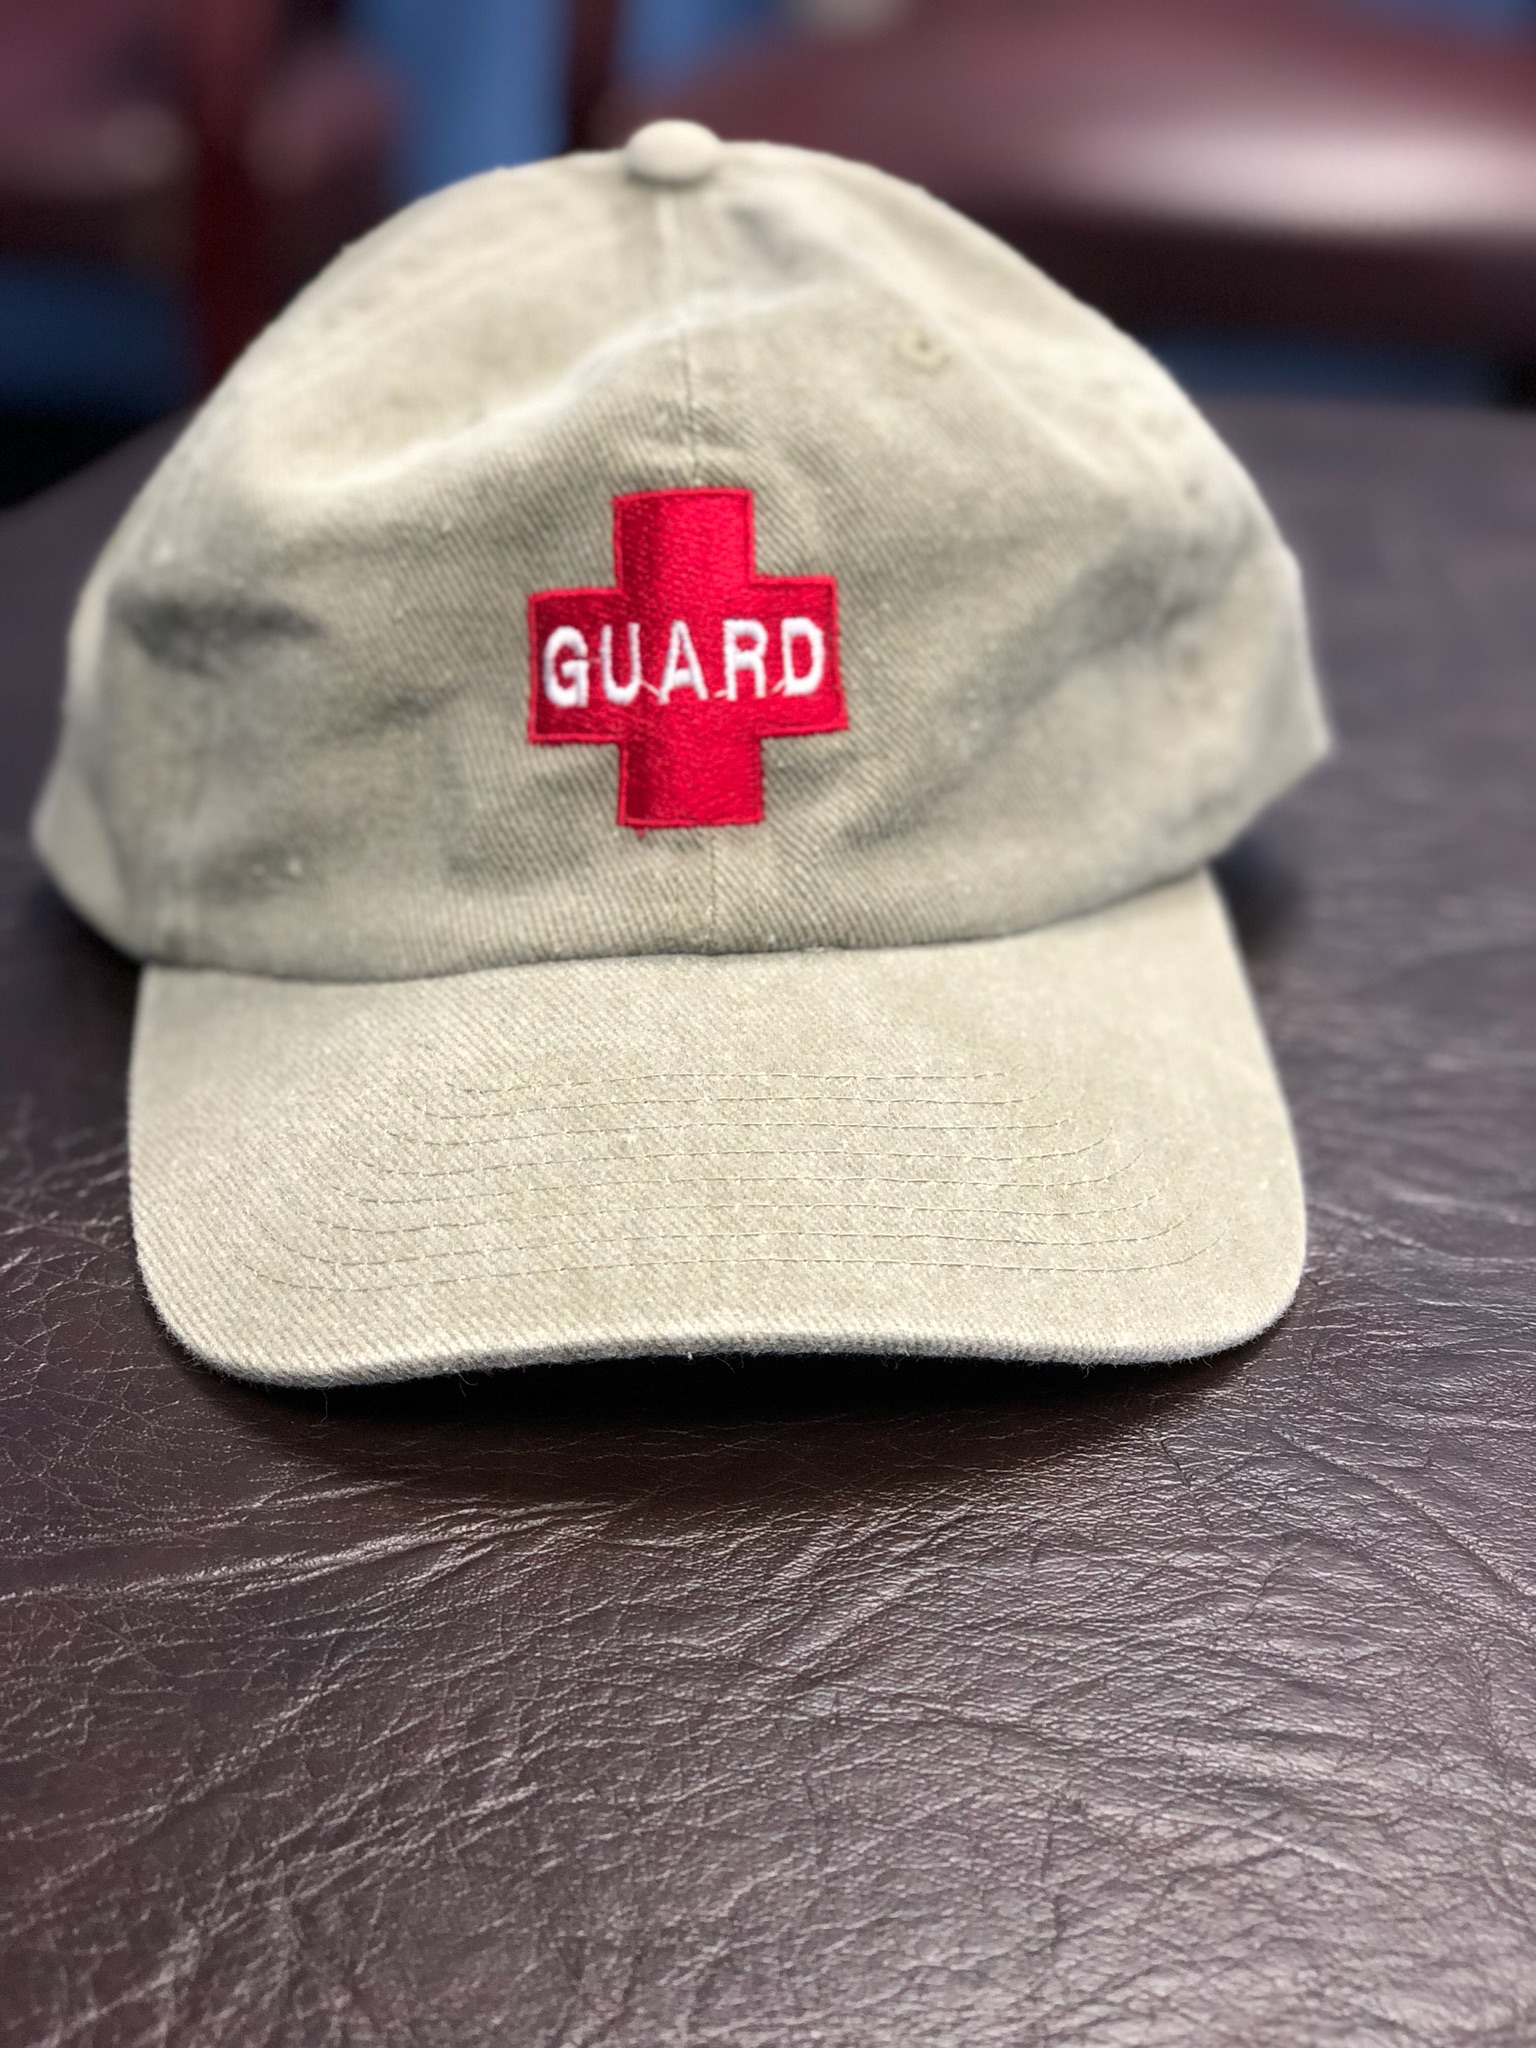 51eff79ae190a9 Lifeguard Baseball Cap   Continental Pools   Commercial and ...